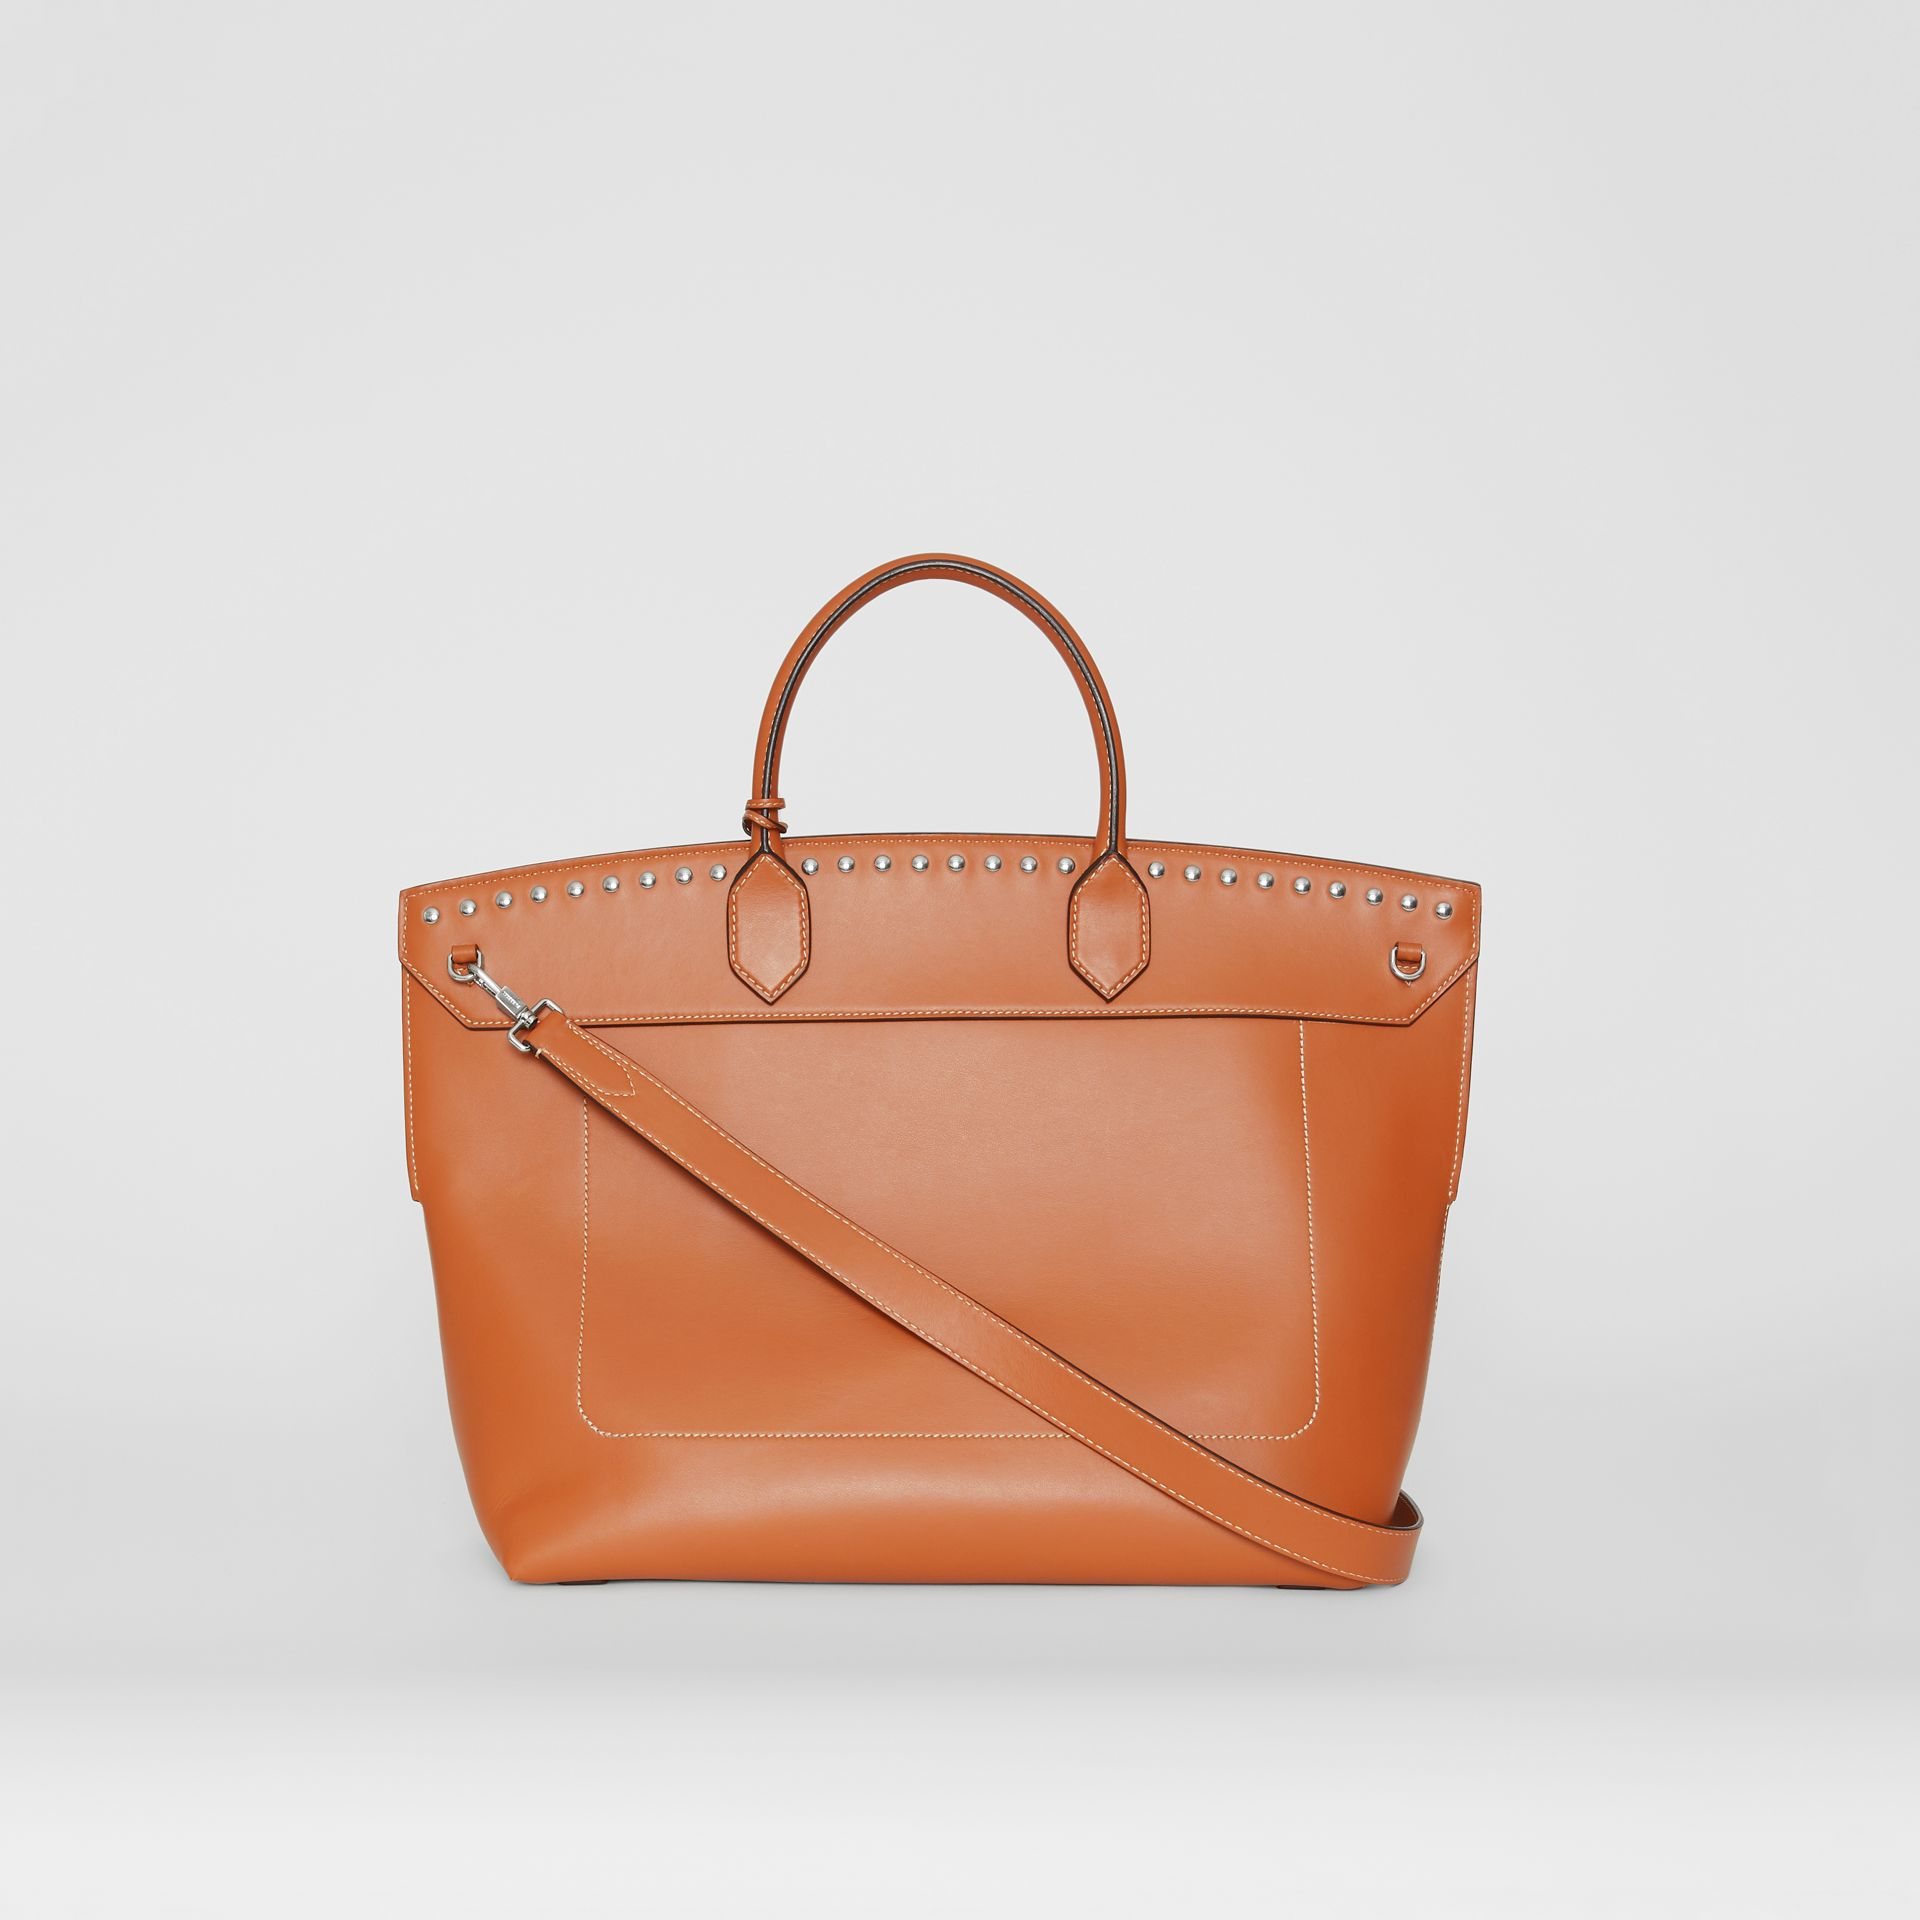 Studded Leather Society Top Handle Bag in Copper Brown - Women | Burberry - gallery image 7